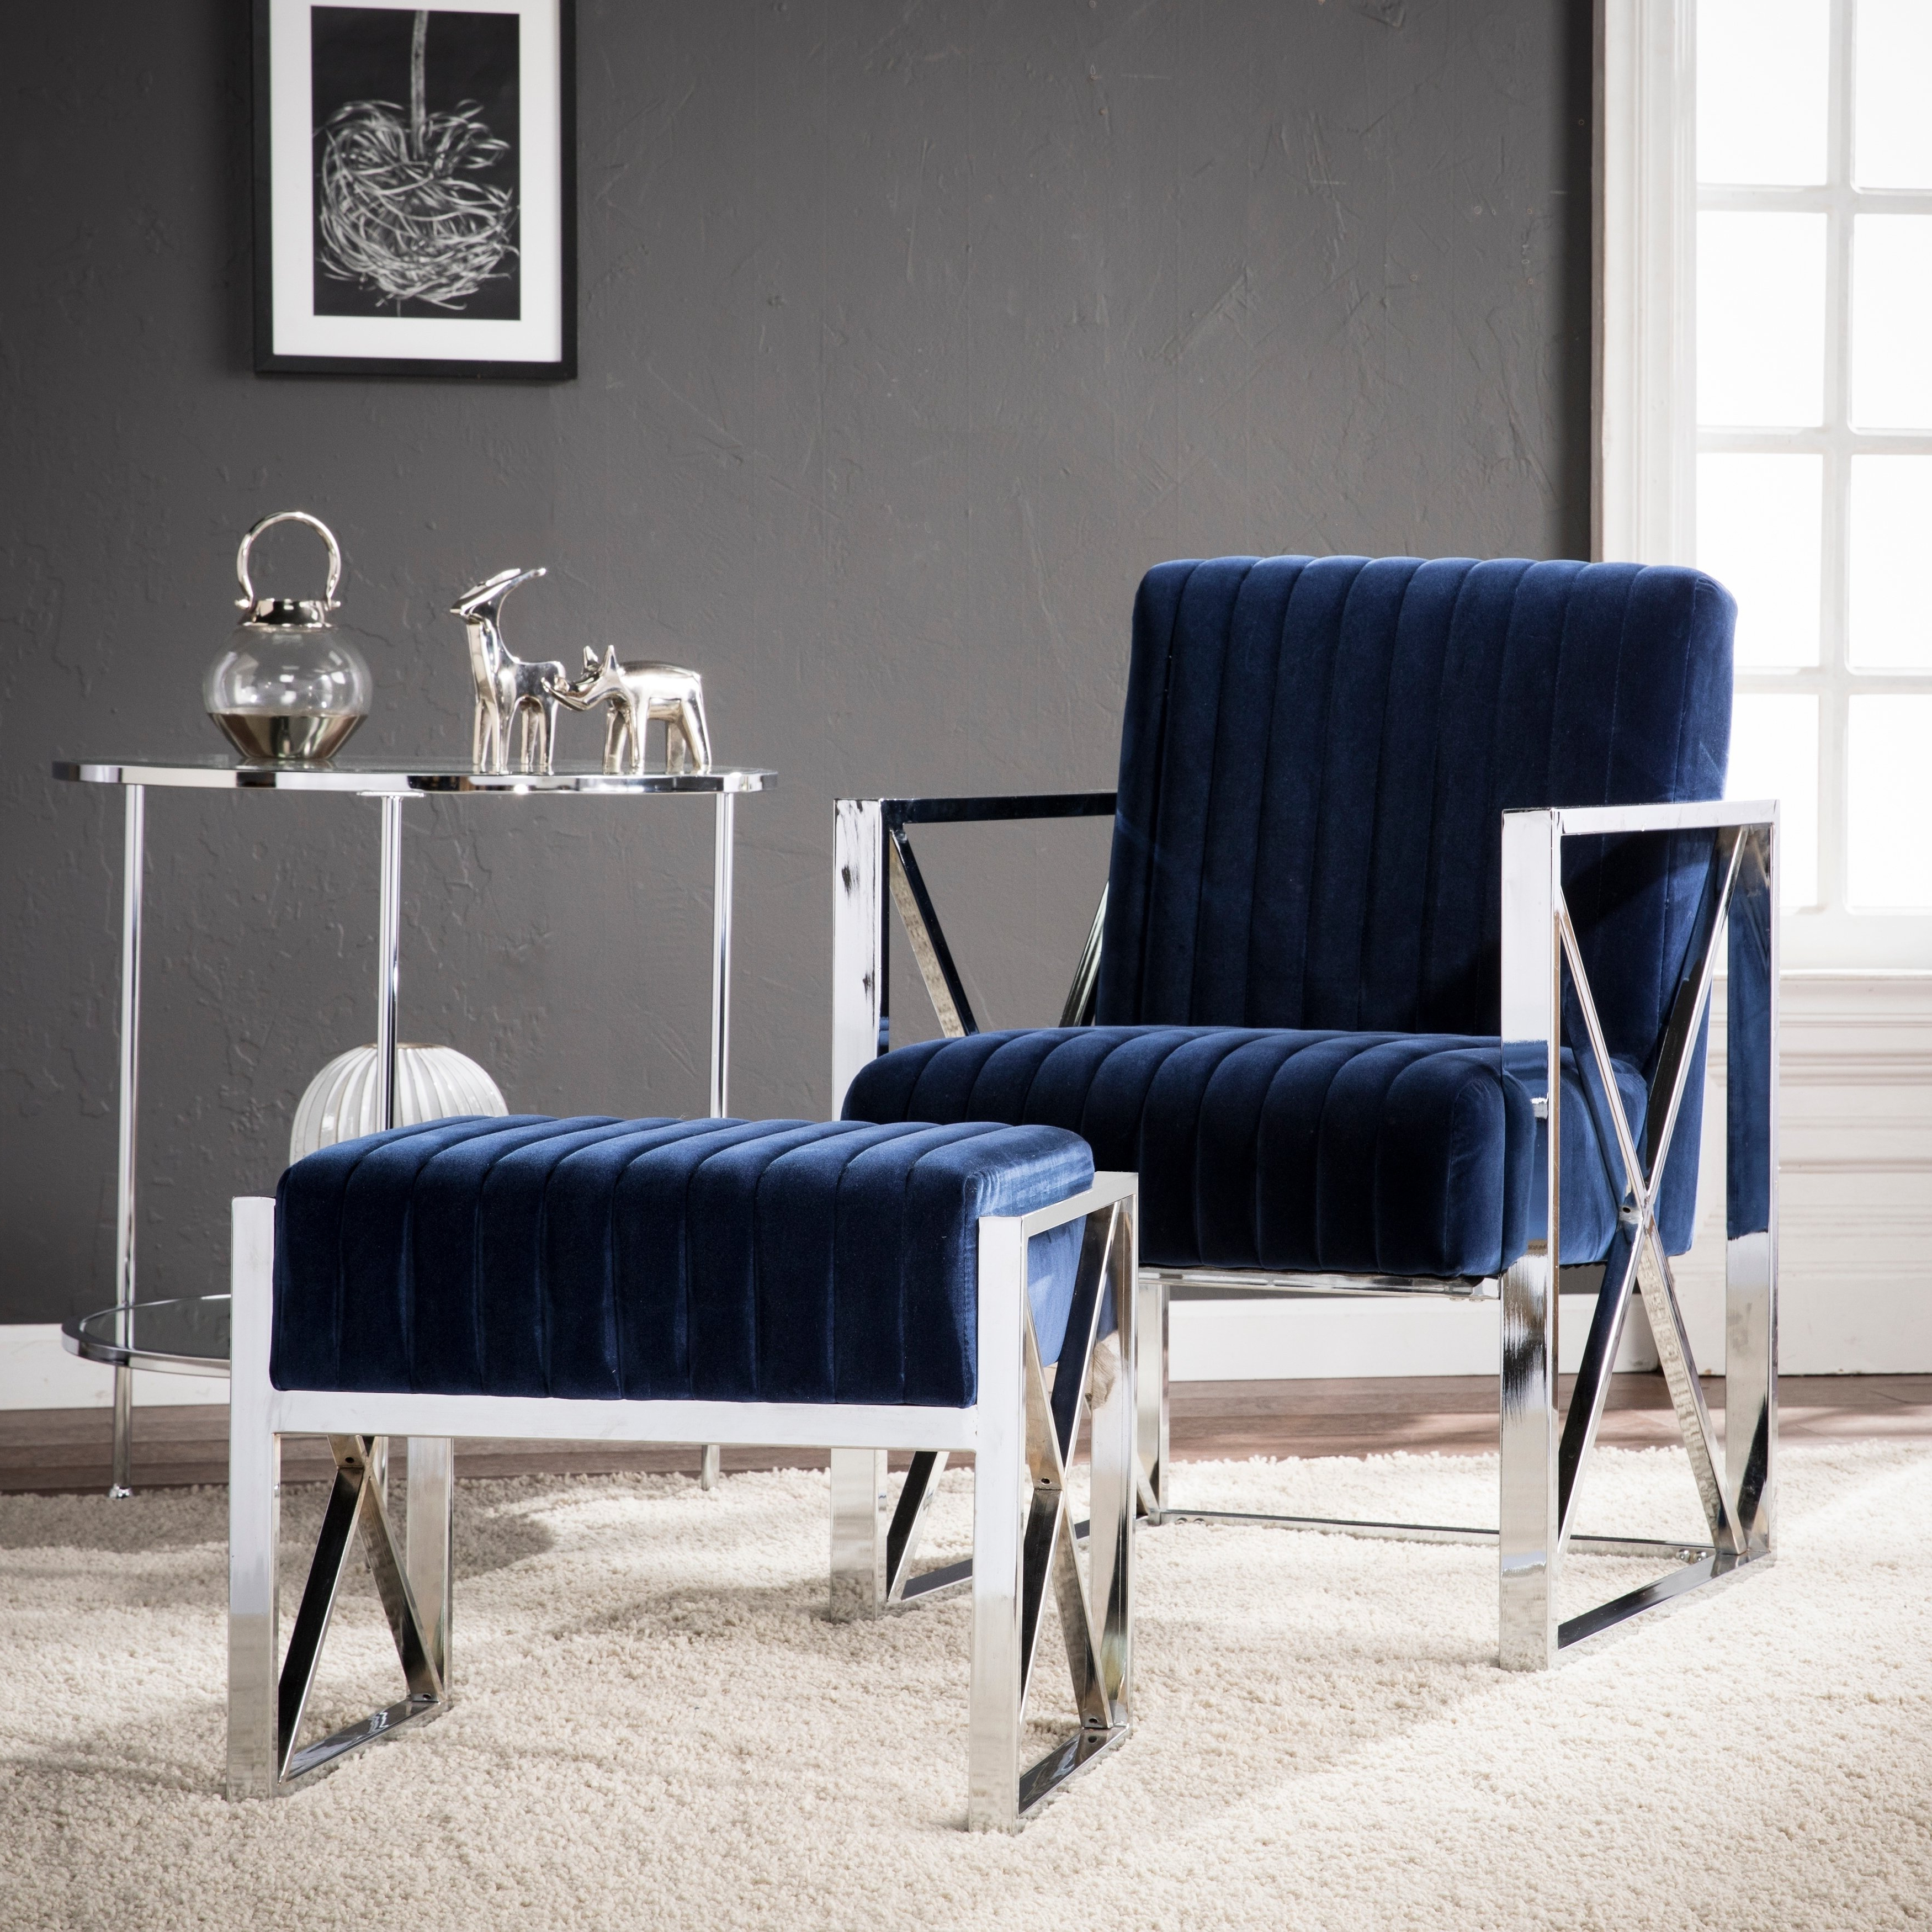 Shop Harper Blvd Edgebrook Blue With Chrome Velveteen Accent Chair Regarding Most Recent Harper Down Oversized Sofa Chairs (View 14 of 20)